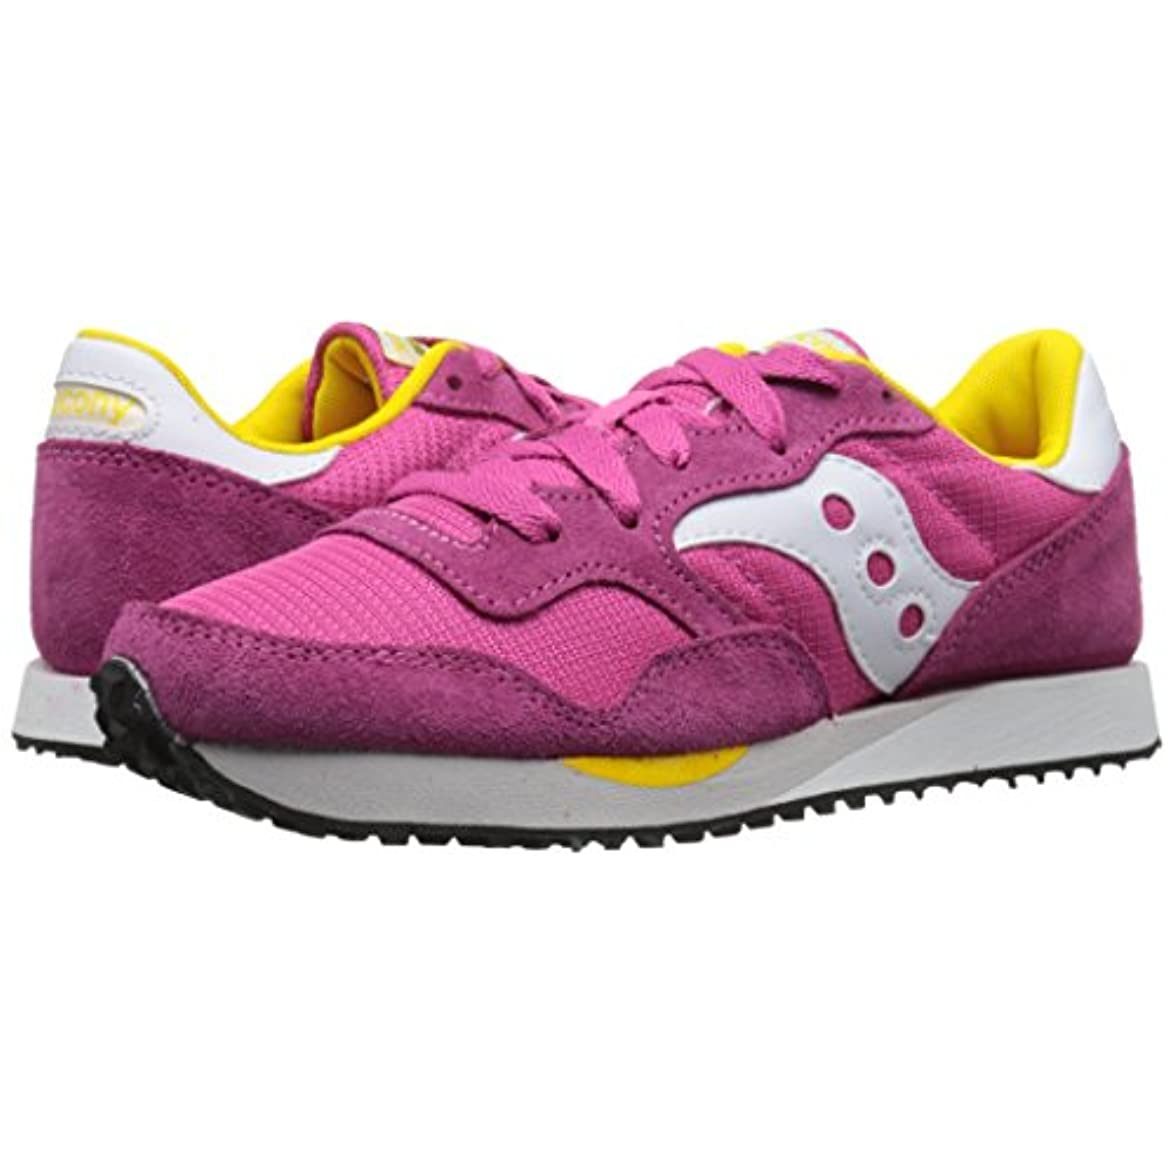 Saucony S60124-26 Dxn Trainer Fuxia Scarpe Donna Sneakers